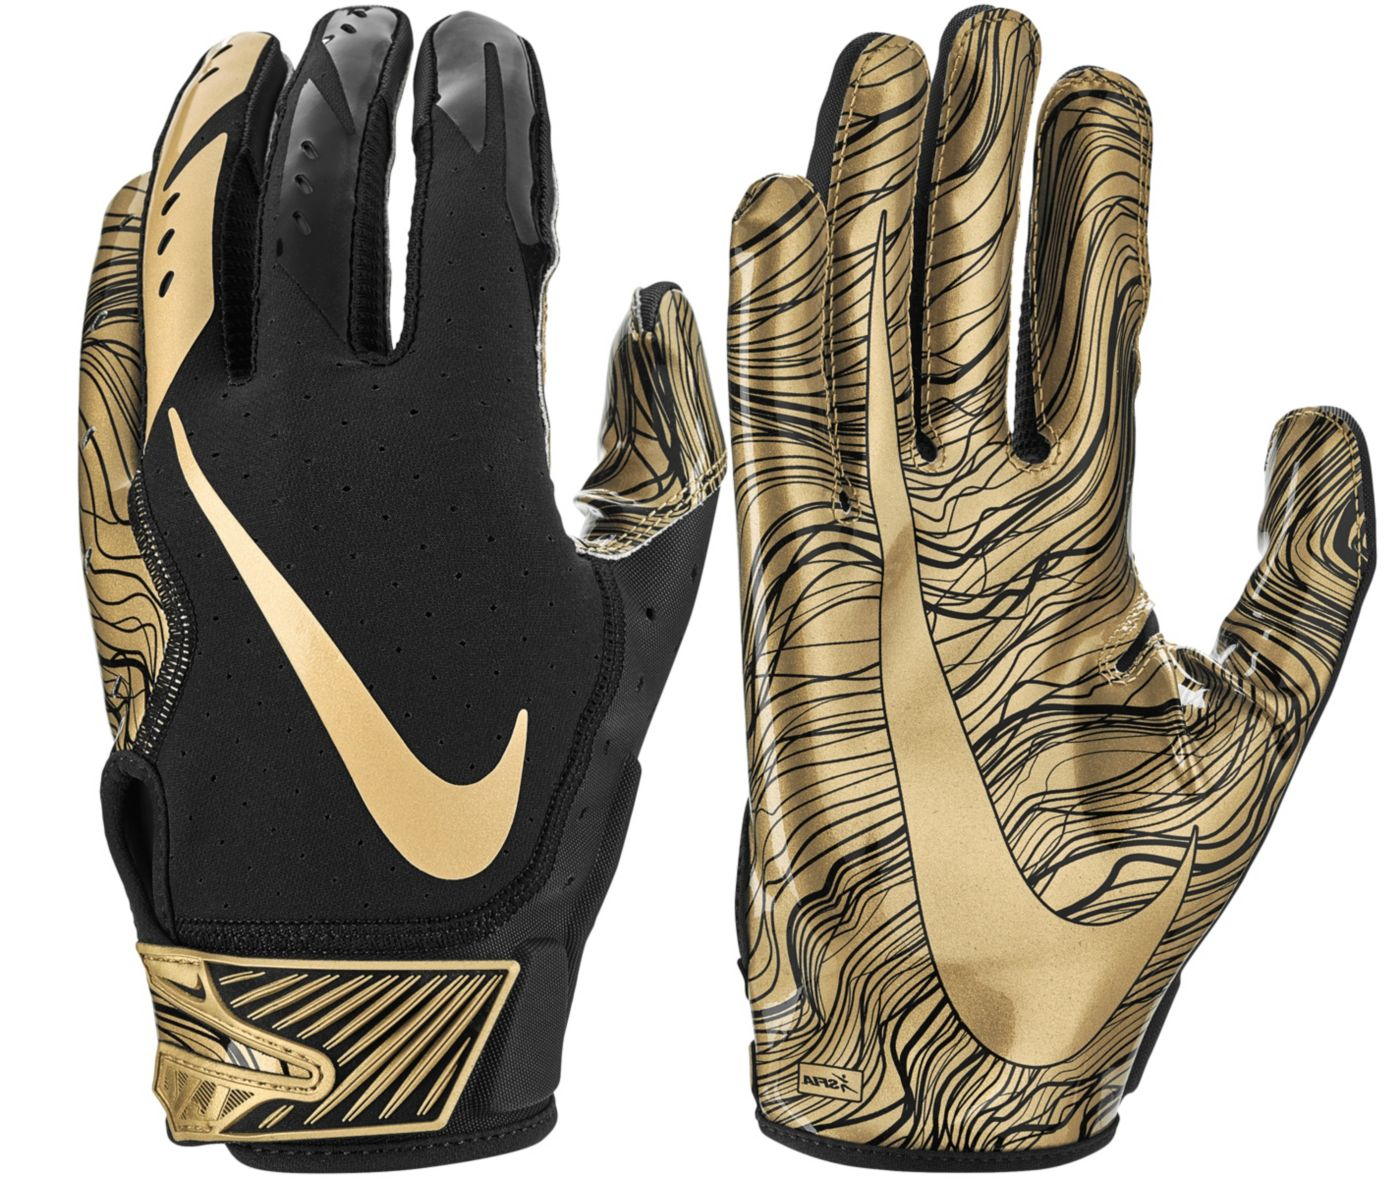 Nike Adult Vapor Jet 5.0 Receiver Gloves